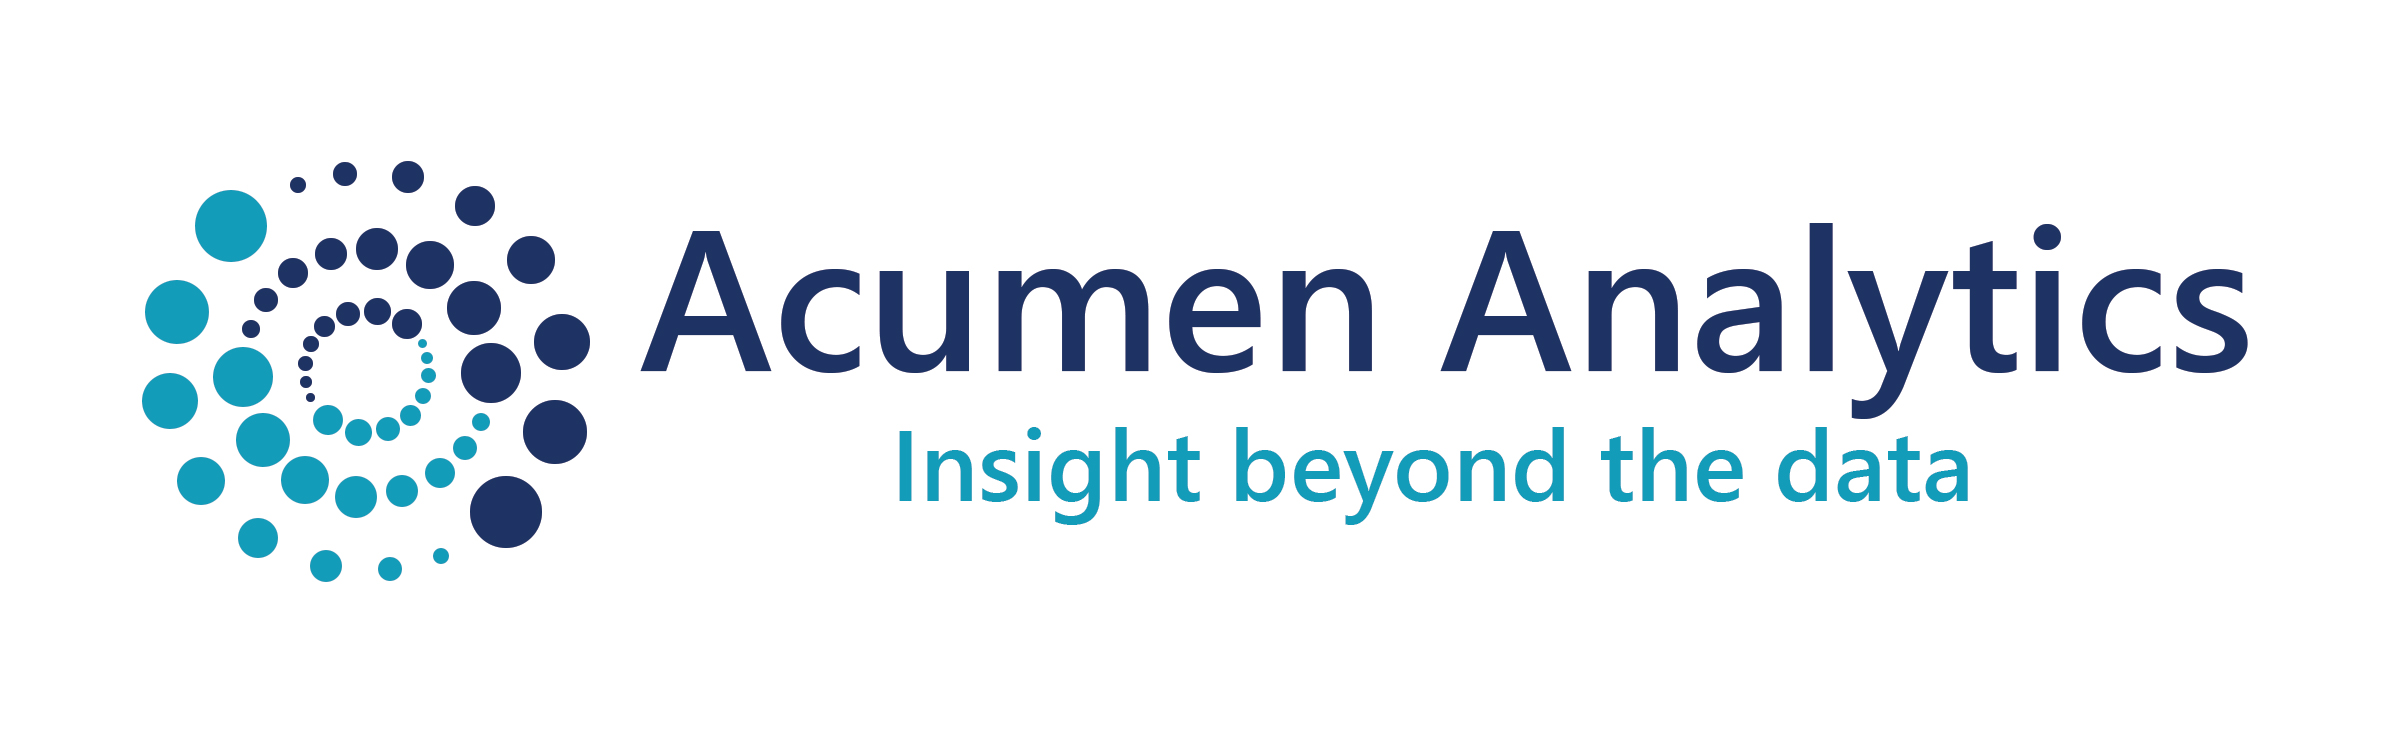 Acumen Analytics, Inc